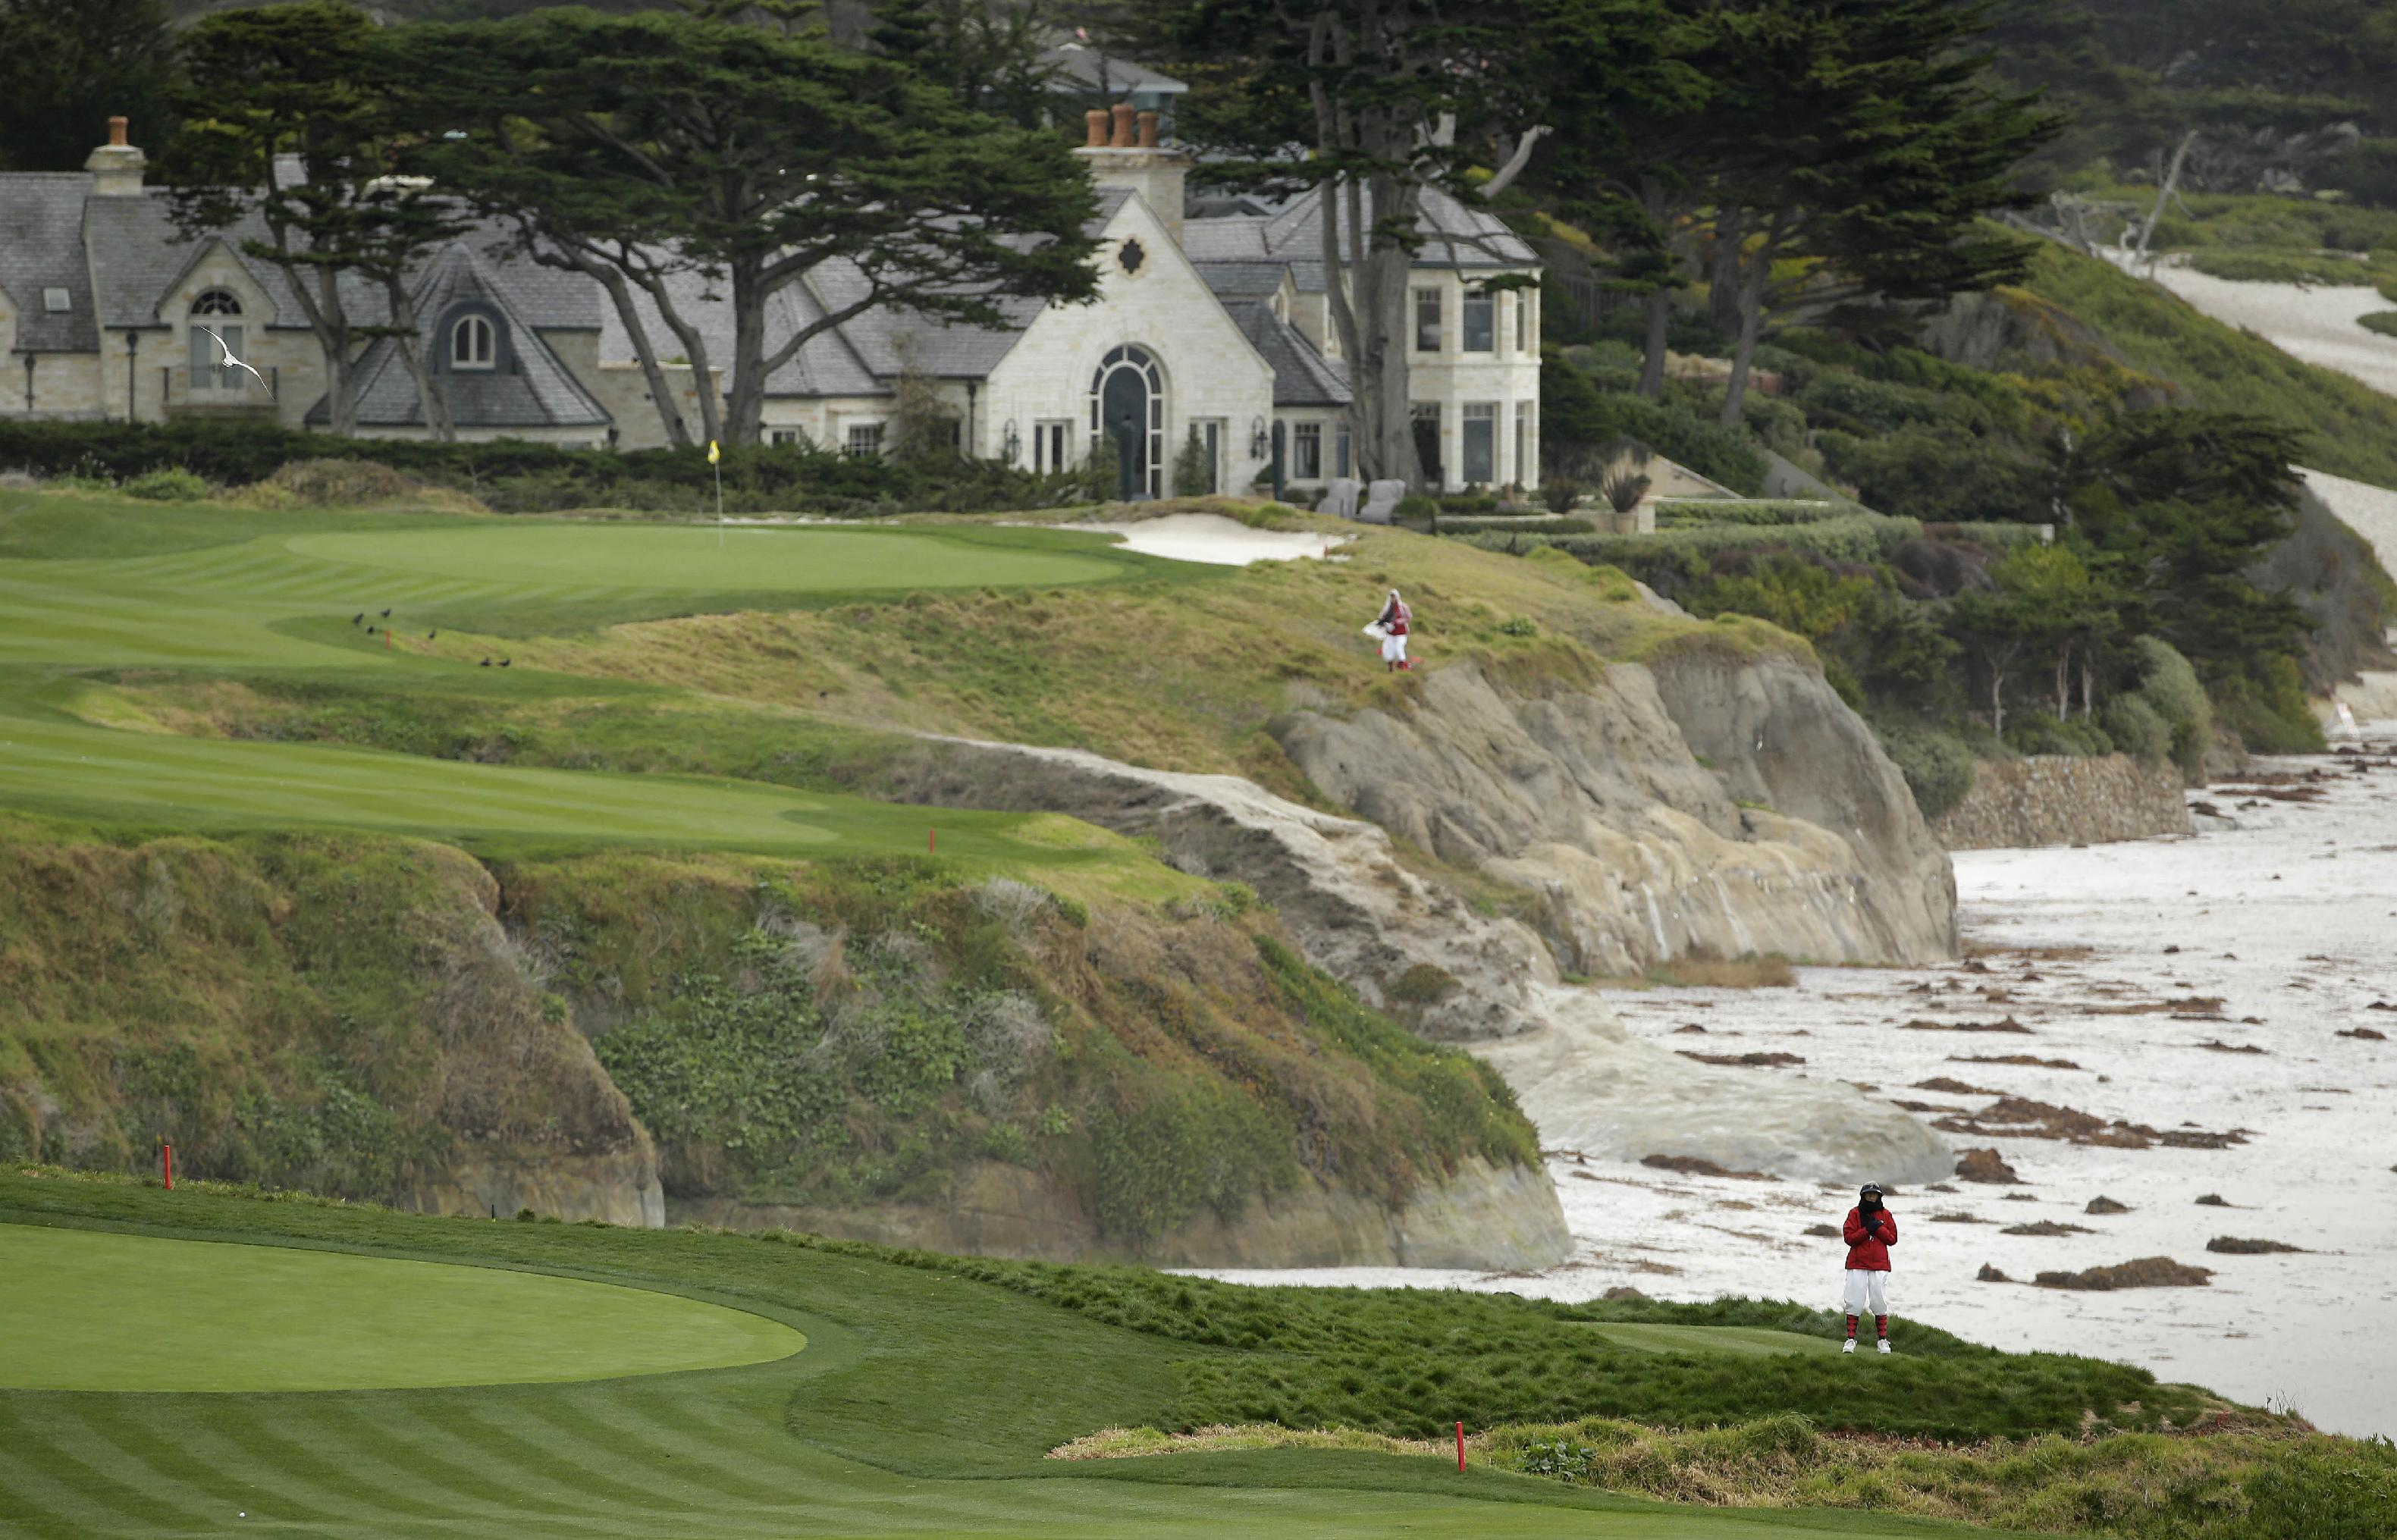 In this photo taken Friday, Feb. 7, 2014, a marshal at lower right stands on an optional 10th tee of the Pebble Beach Golf Links with the 10th green in the background during the second round of the AT&T Pebble Beach Pro-Am golf tournament in Pebble Beach, Calif. The optional 10th tee is to the right of the ninth green. Officials discovered it in old photos and restored it after they rebuilt the ninth green. Pebble Beach wants the USGA to look at it as a possible forward tee in the 2019 U.S. Open